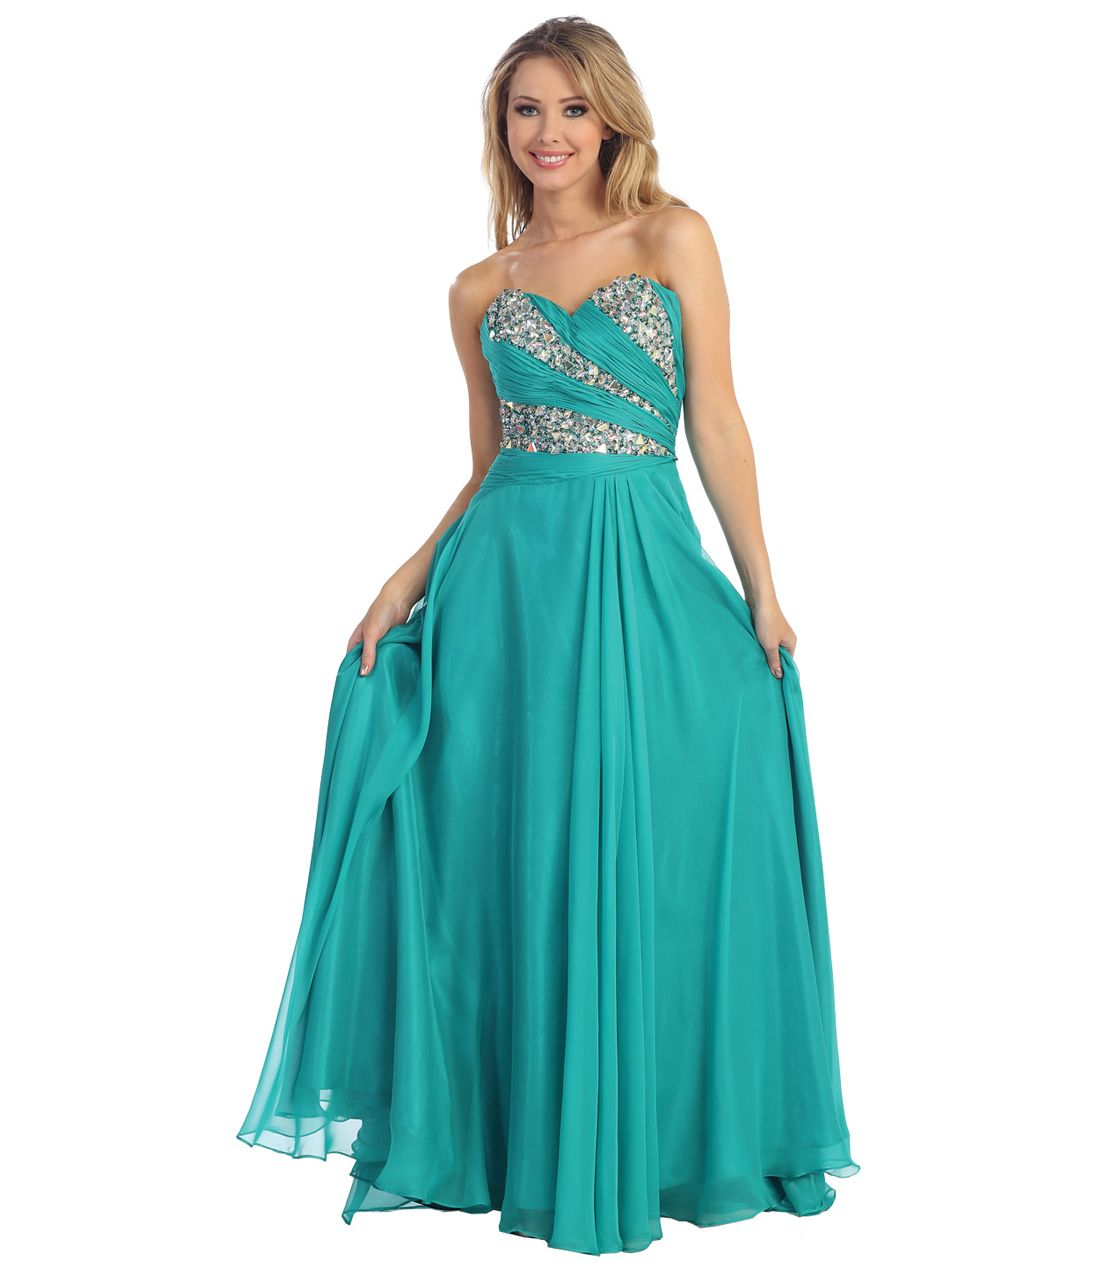 G prom dresses $50 $100 - I love Prom dress